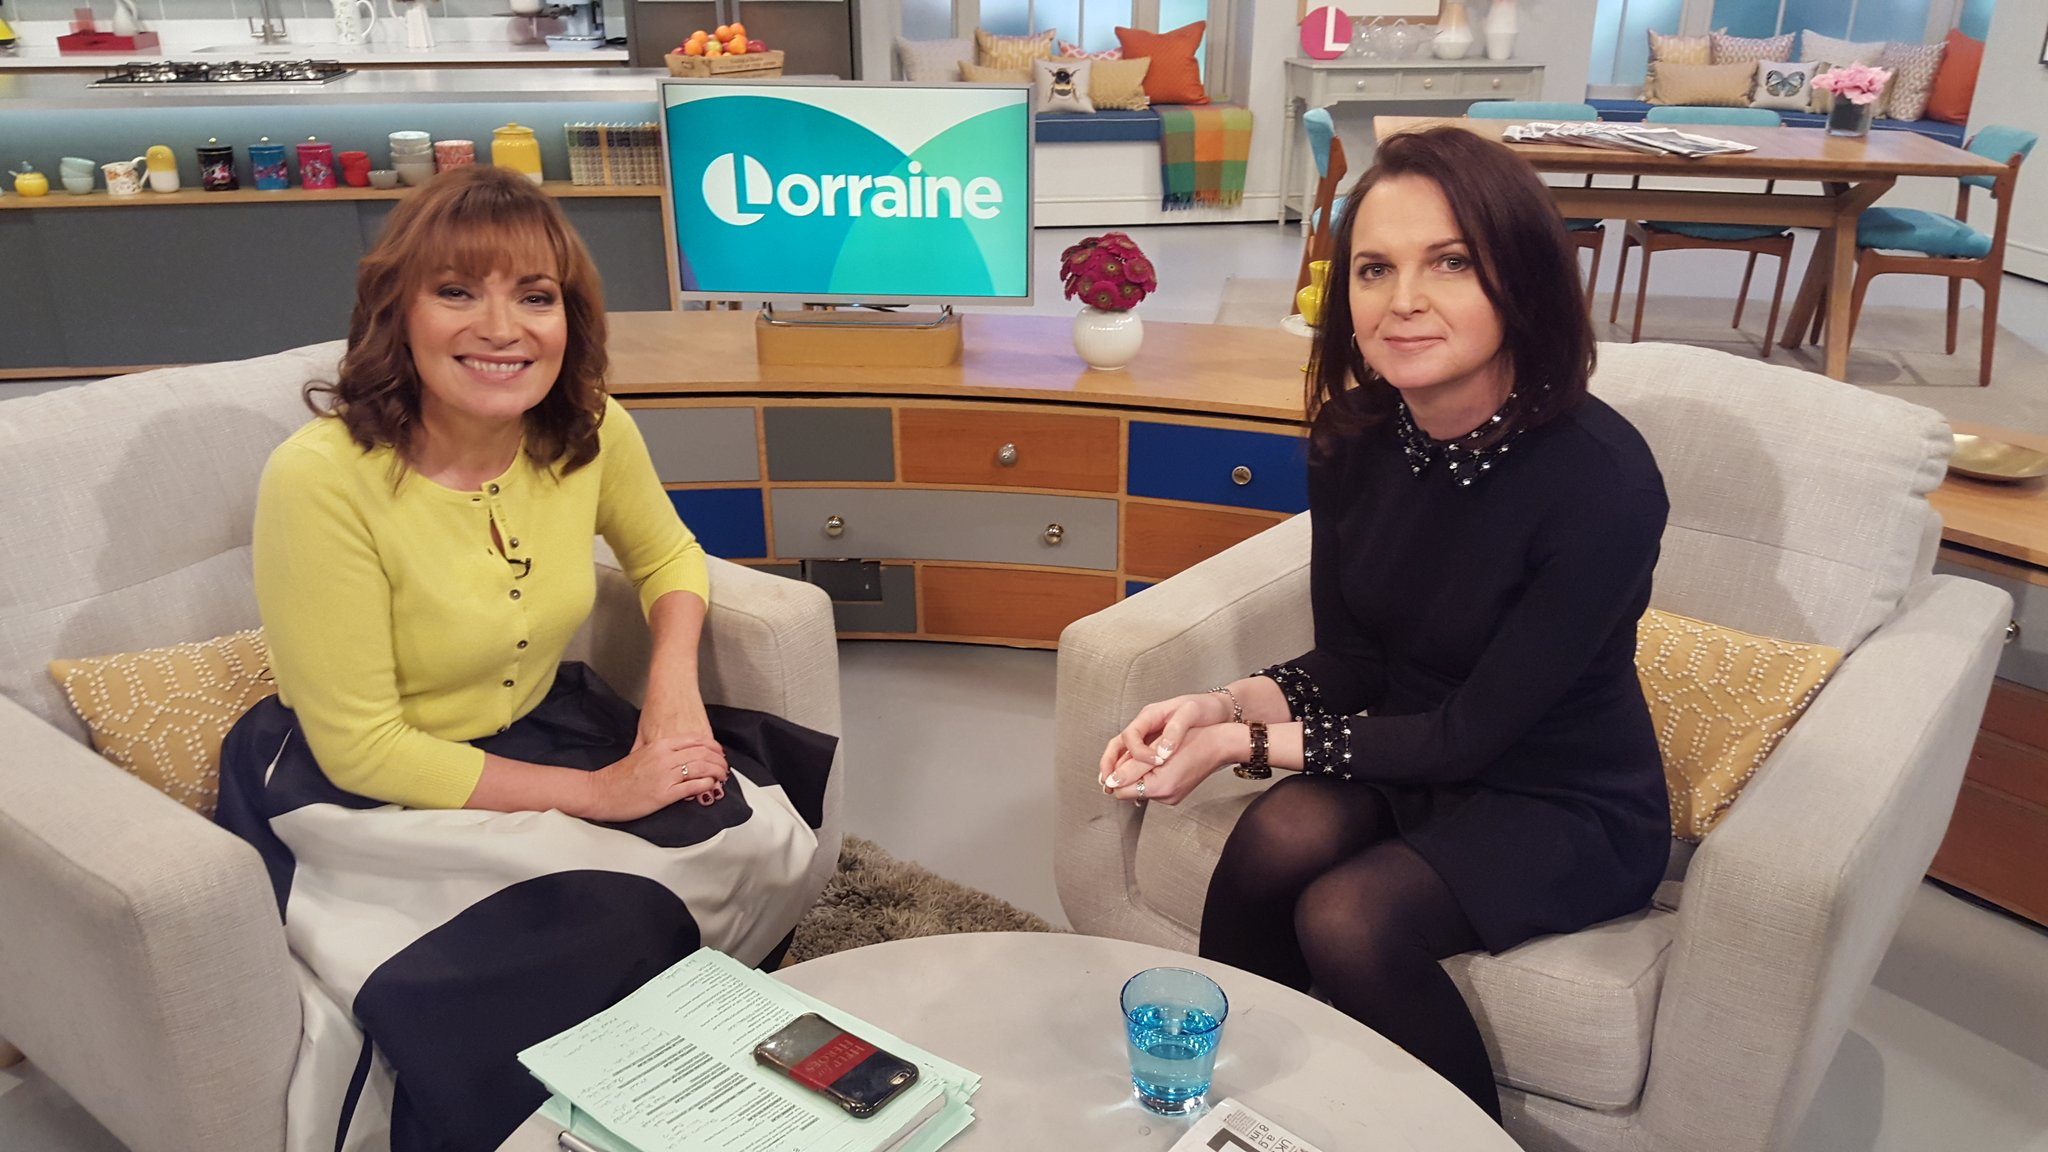 india willoughby my double life hot topics lorraine